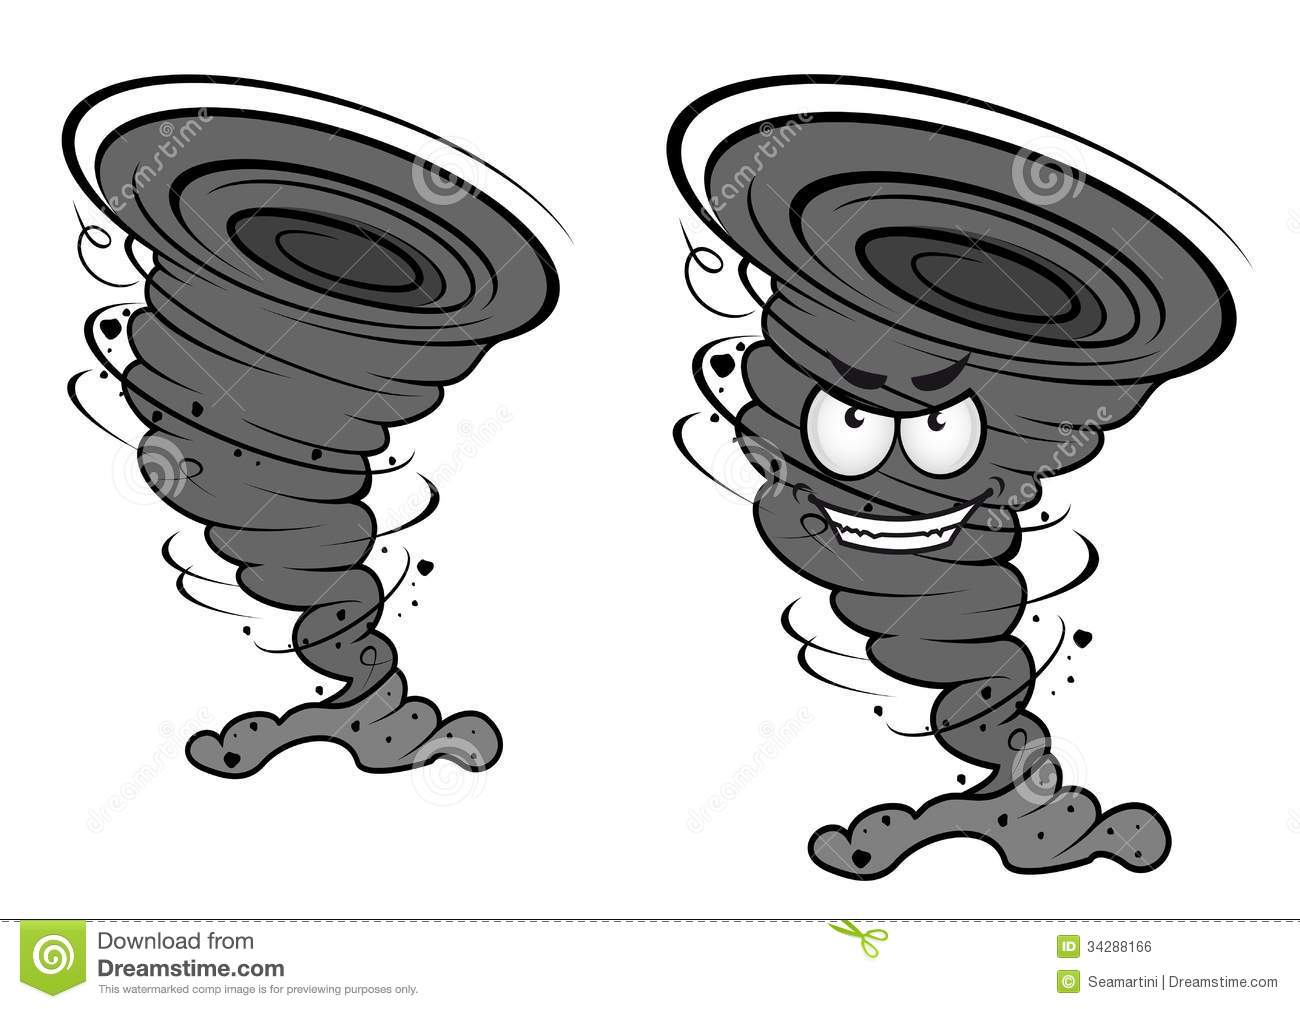 Twister Tornado Clip Art Danger tornado disaster